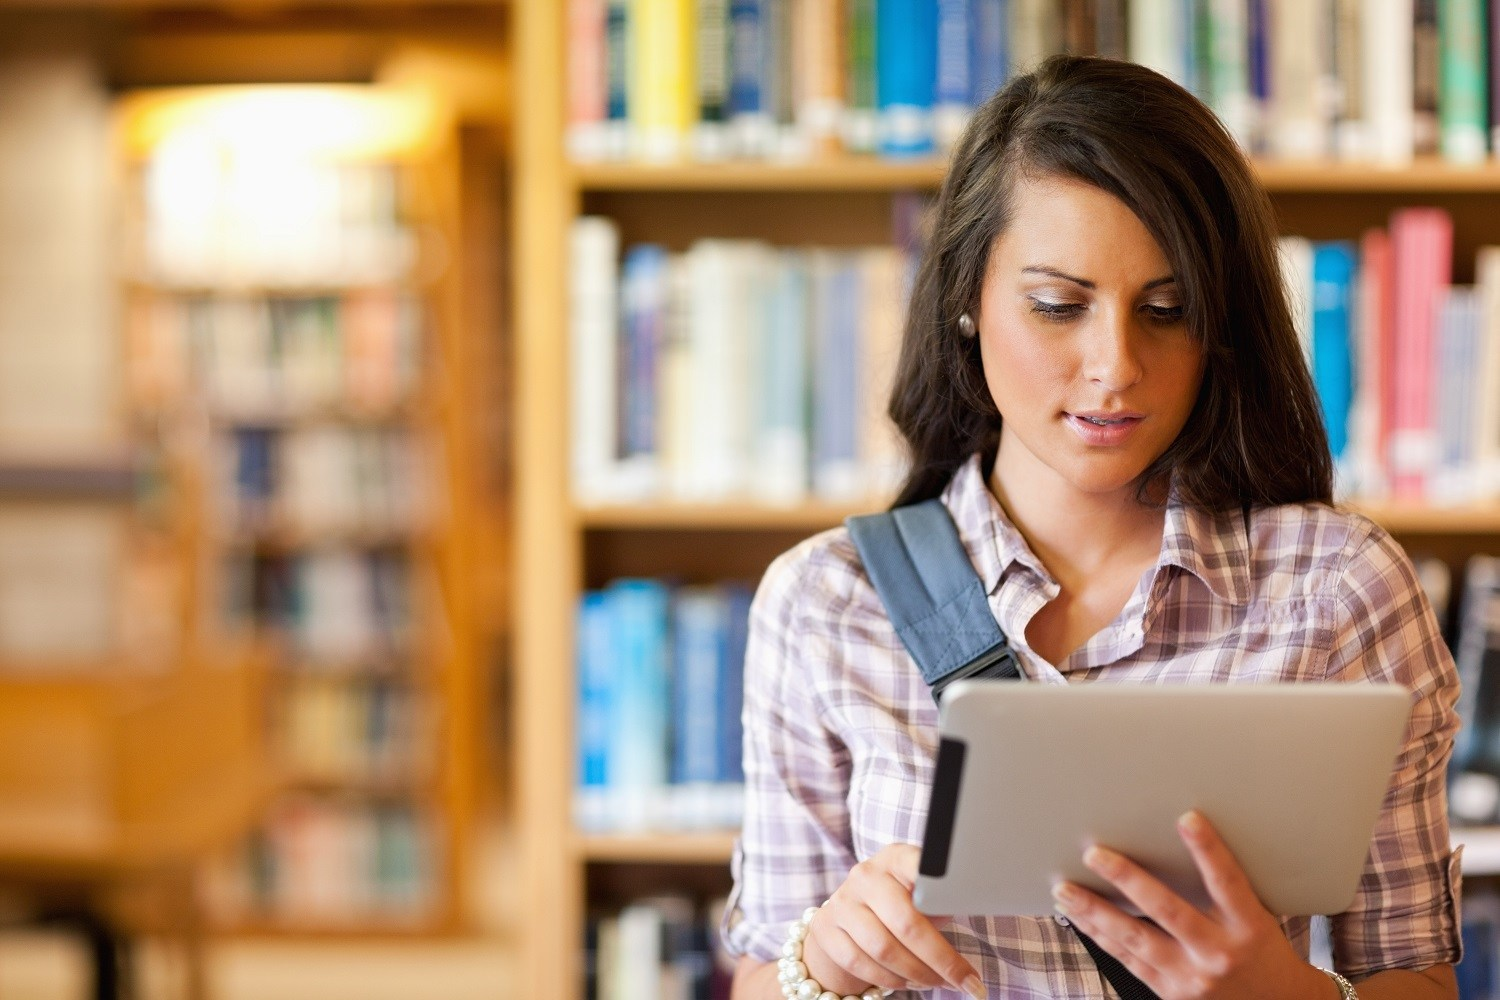 A woman using a tablet in a library